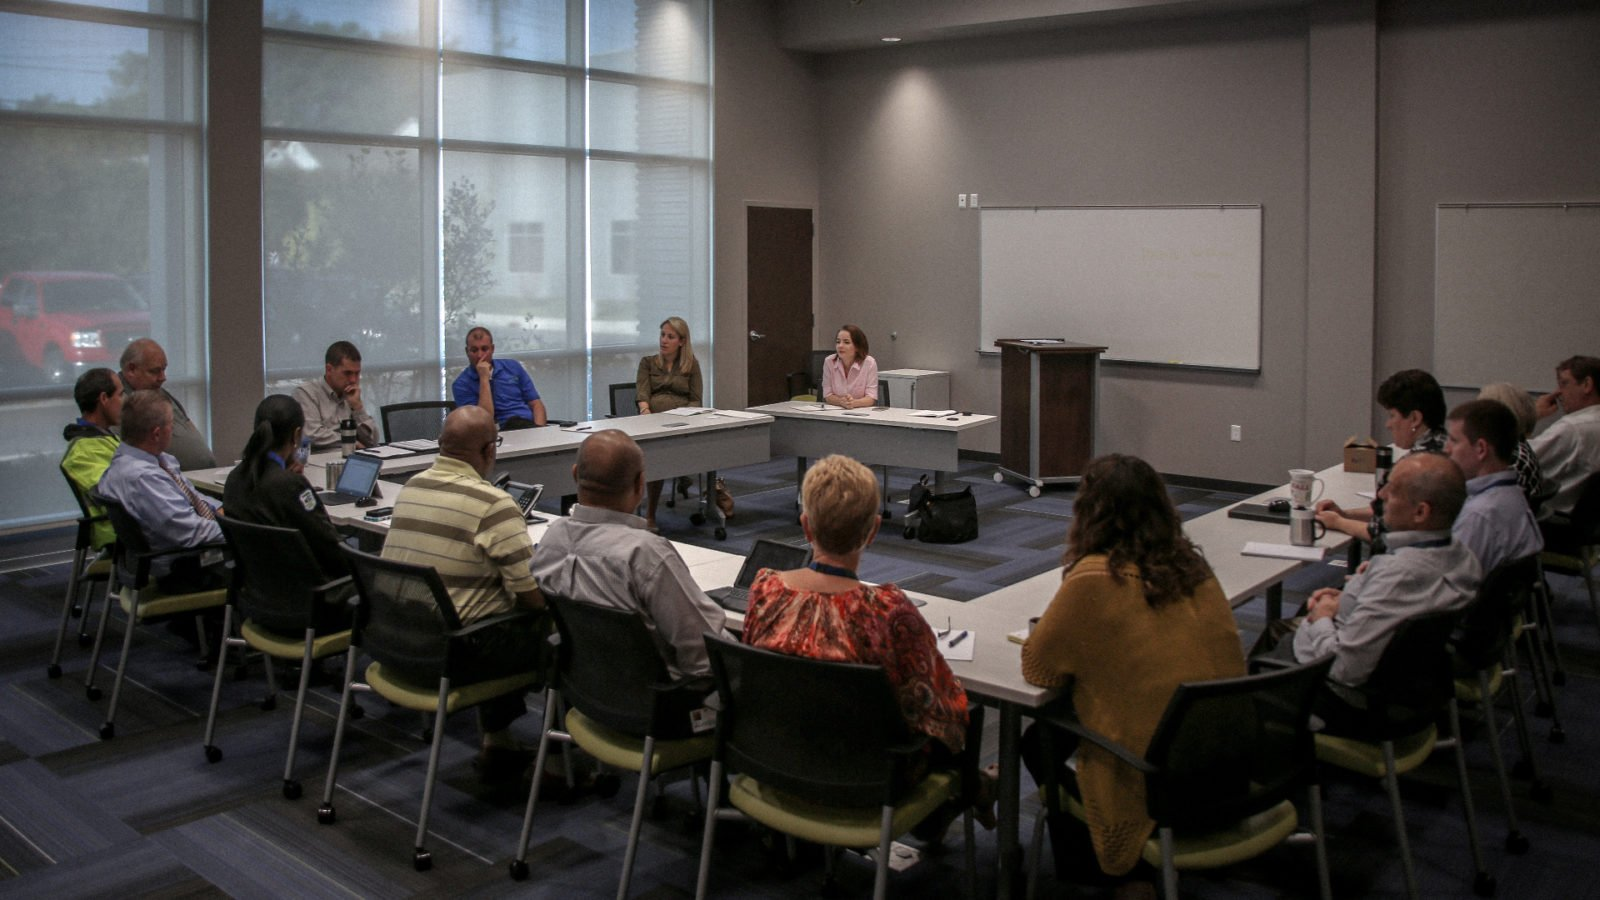 Focus Group meetings for the rebranding for Lextran, Lexington Transit Authority